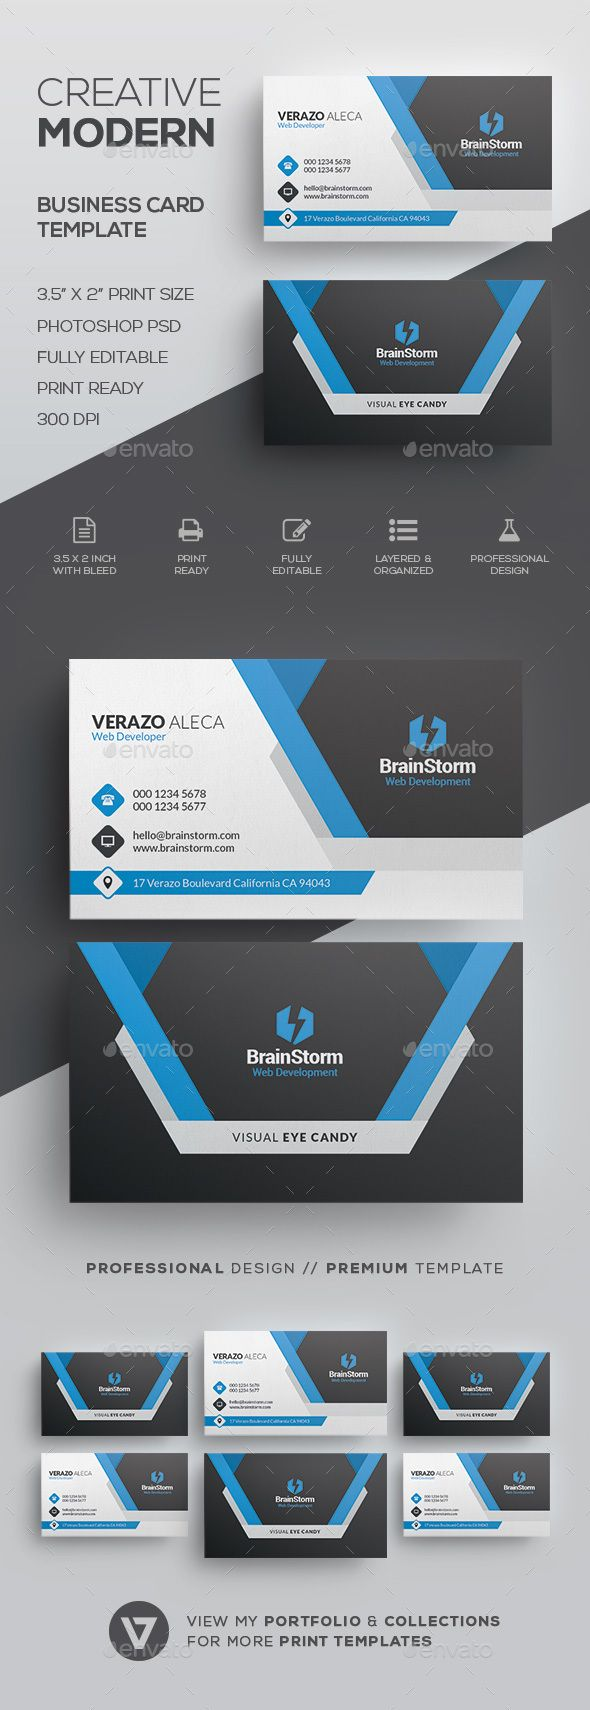 Modern Business Card Template | Buy business cards, Card templates ...